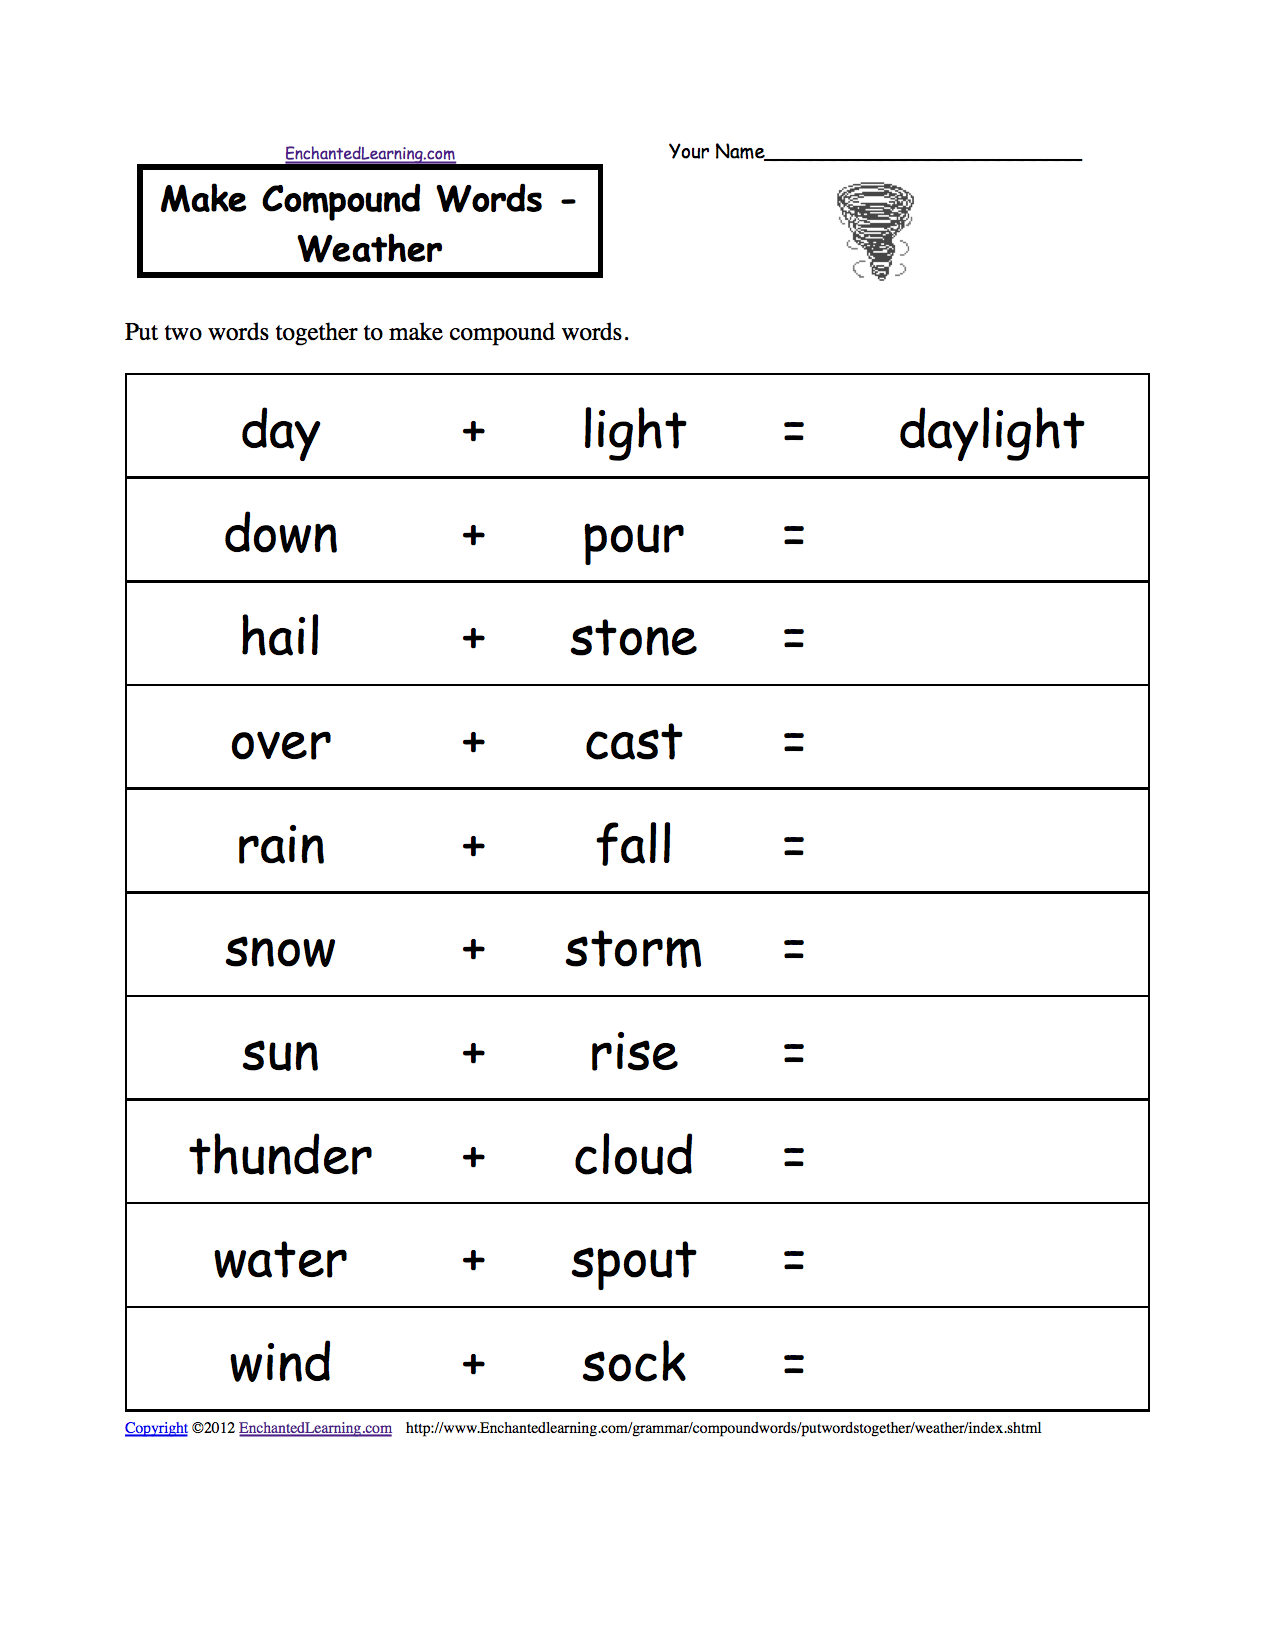 Free Worksheet Free Printable Writing Worksheets For 1st Grade weather worksheets first grade worksheet by laska related activities at enchantedlearning com